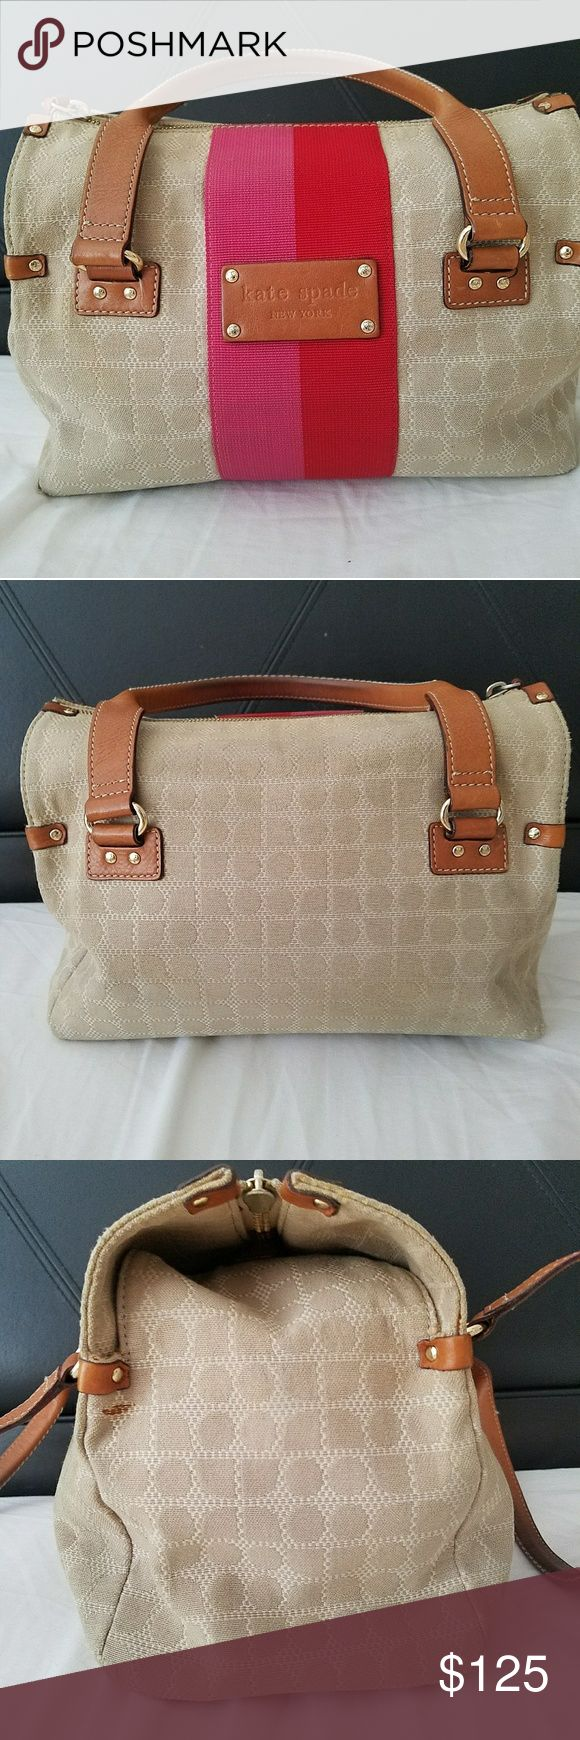 """FLASH SALE Kate Spade 👜 Gently used Kate Spade vintage signature handbag. Woven canvas w/ leather trim. Perfect for Spring/Summer. Aprox 11"""" long, 7"""" high & 6"""" wide. Please don't hesitate to ask questions or use offer button to negotiate. kate spade Bags"""